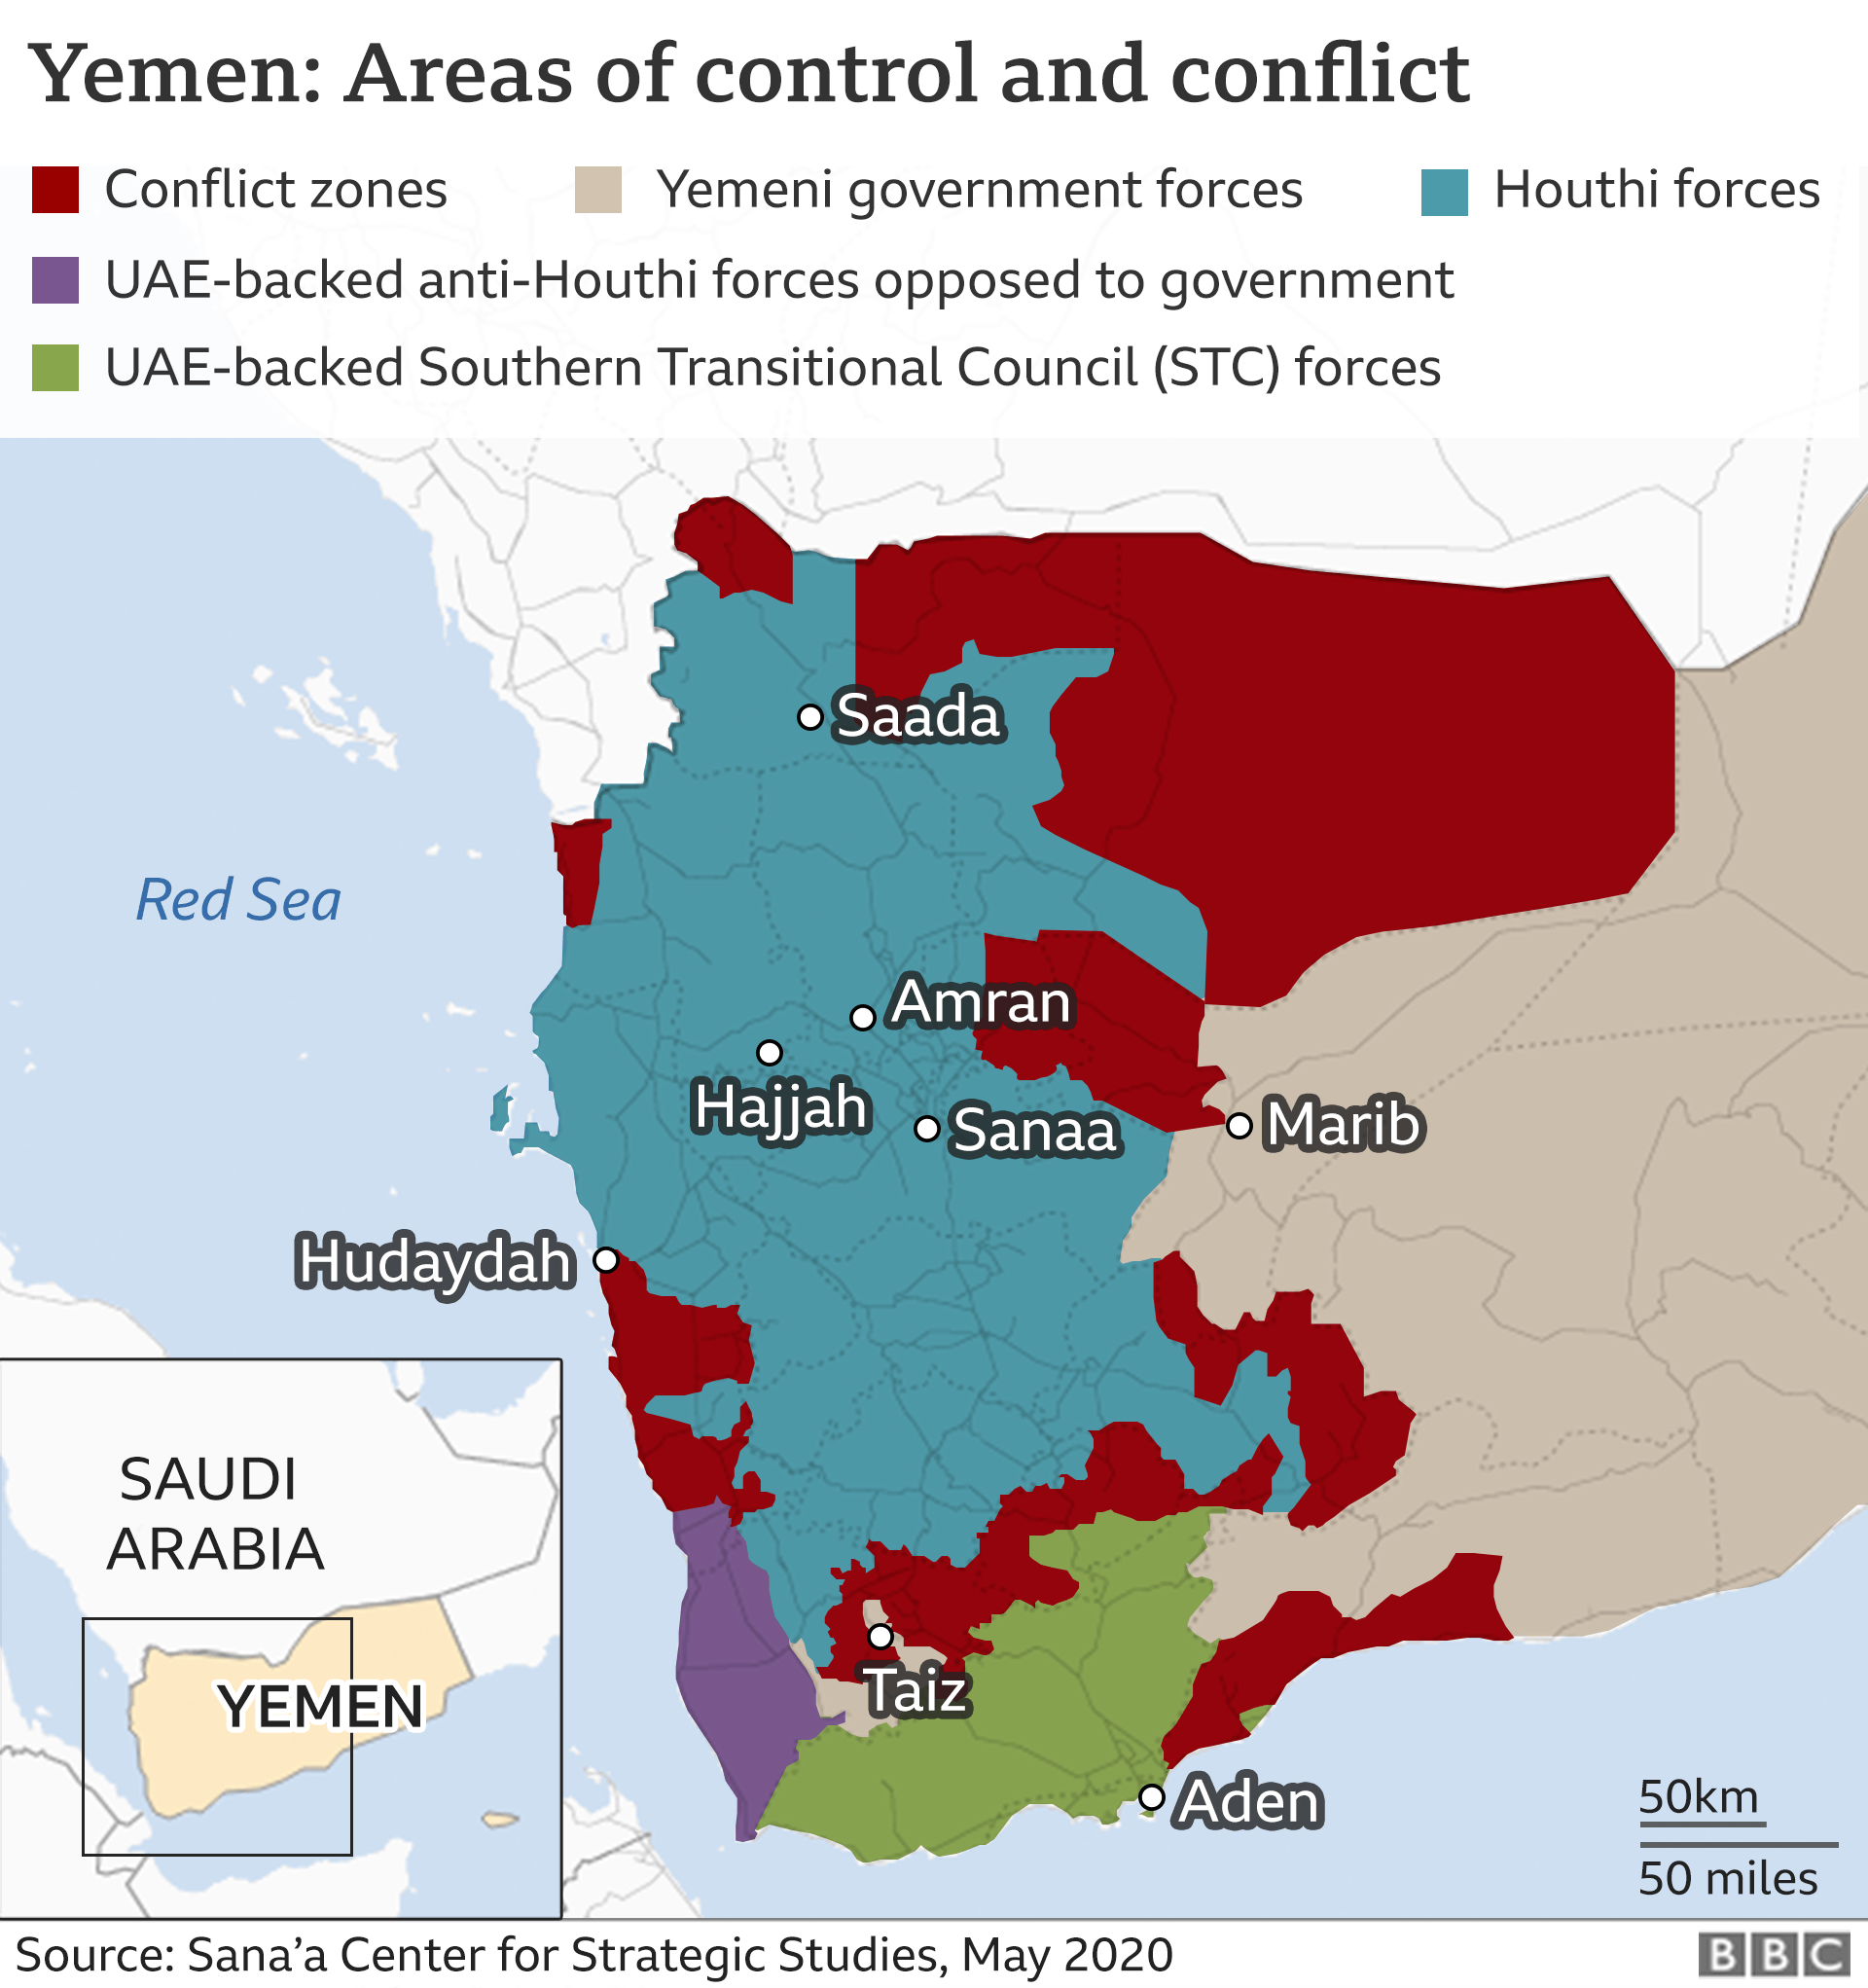 Map of Yemen showing areas of conflict and control (May 2020)